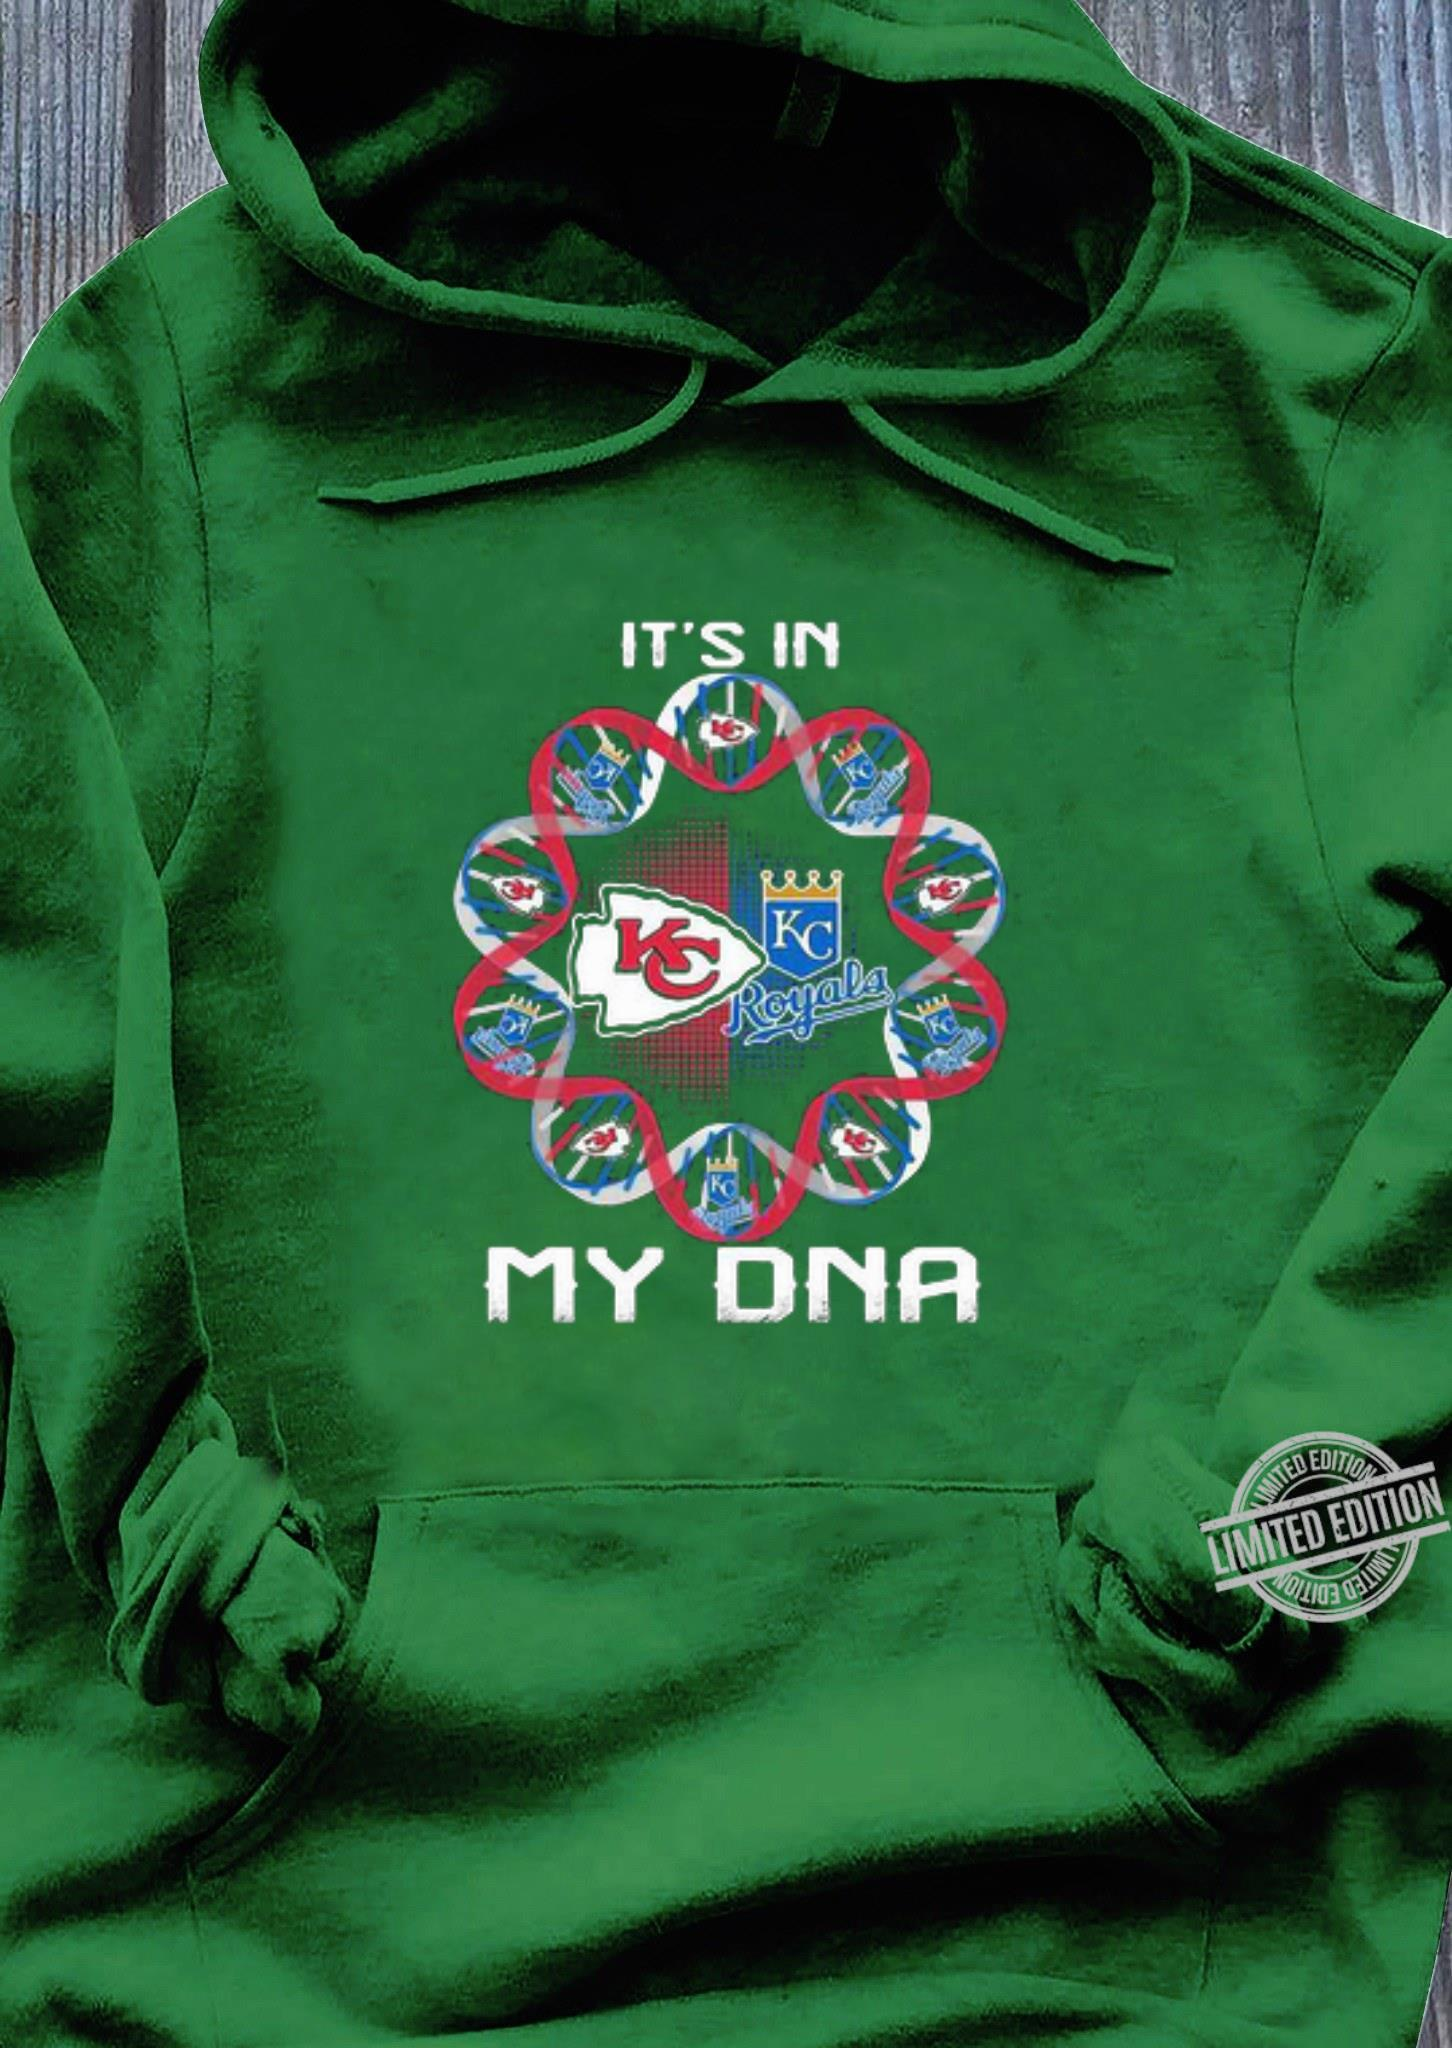 Kansas City Chiefs And Kansas City Royals It's In My DNA shirt, hoodie, sweater, longsleeve t-shirt hoodie